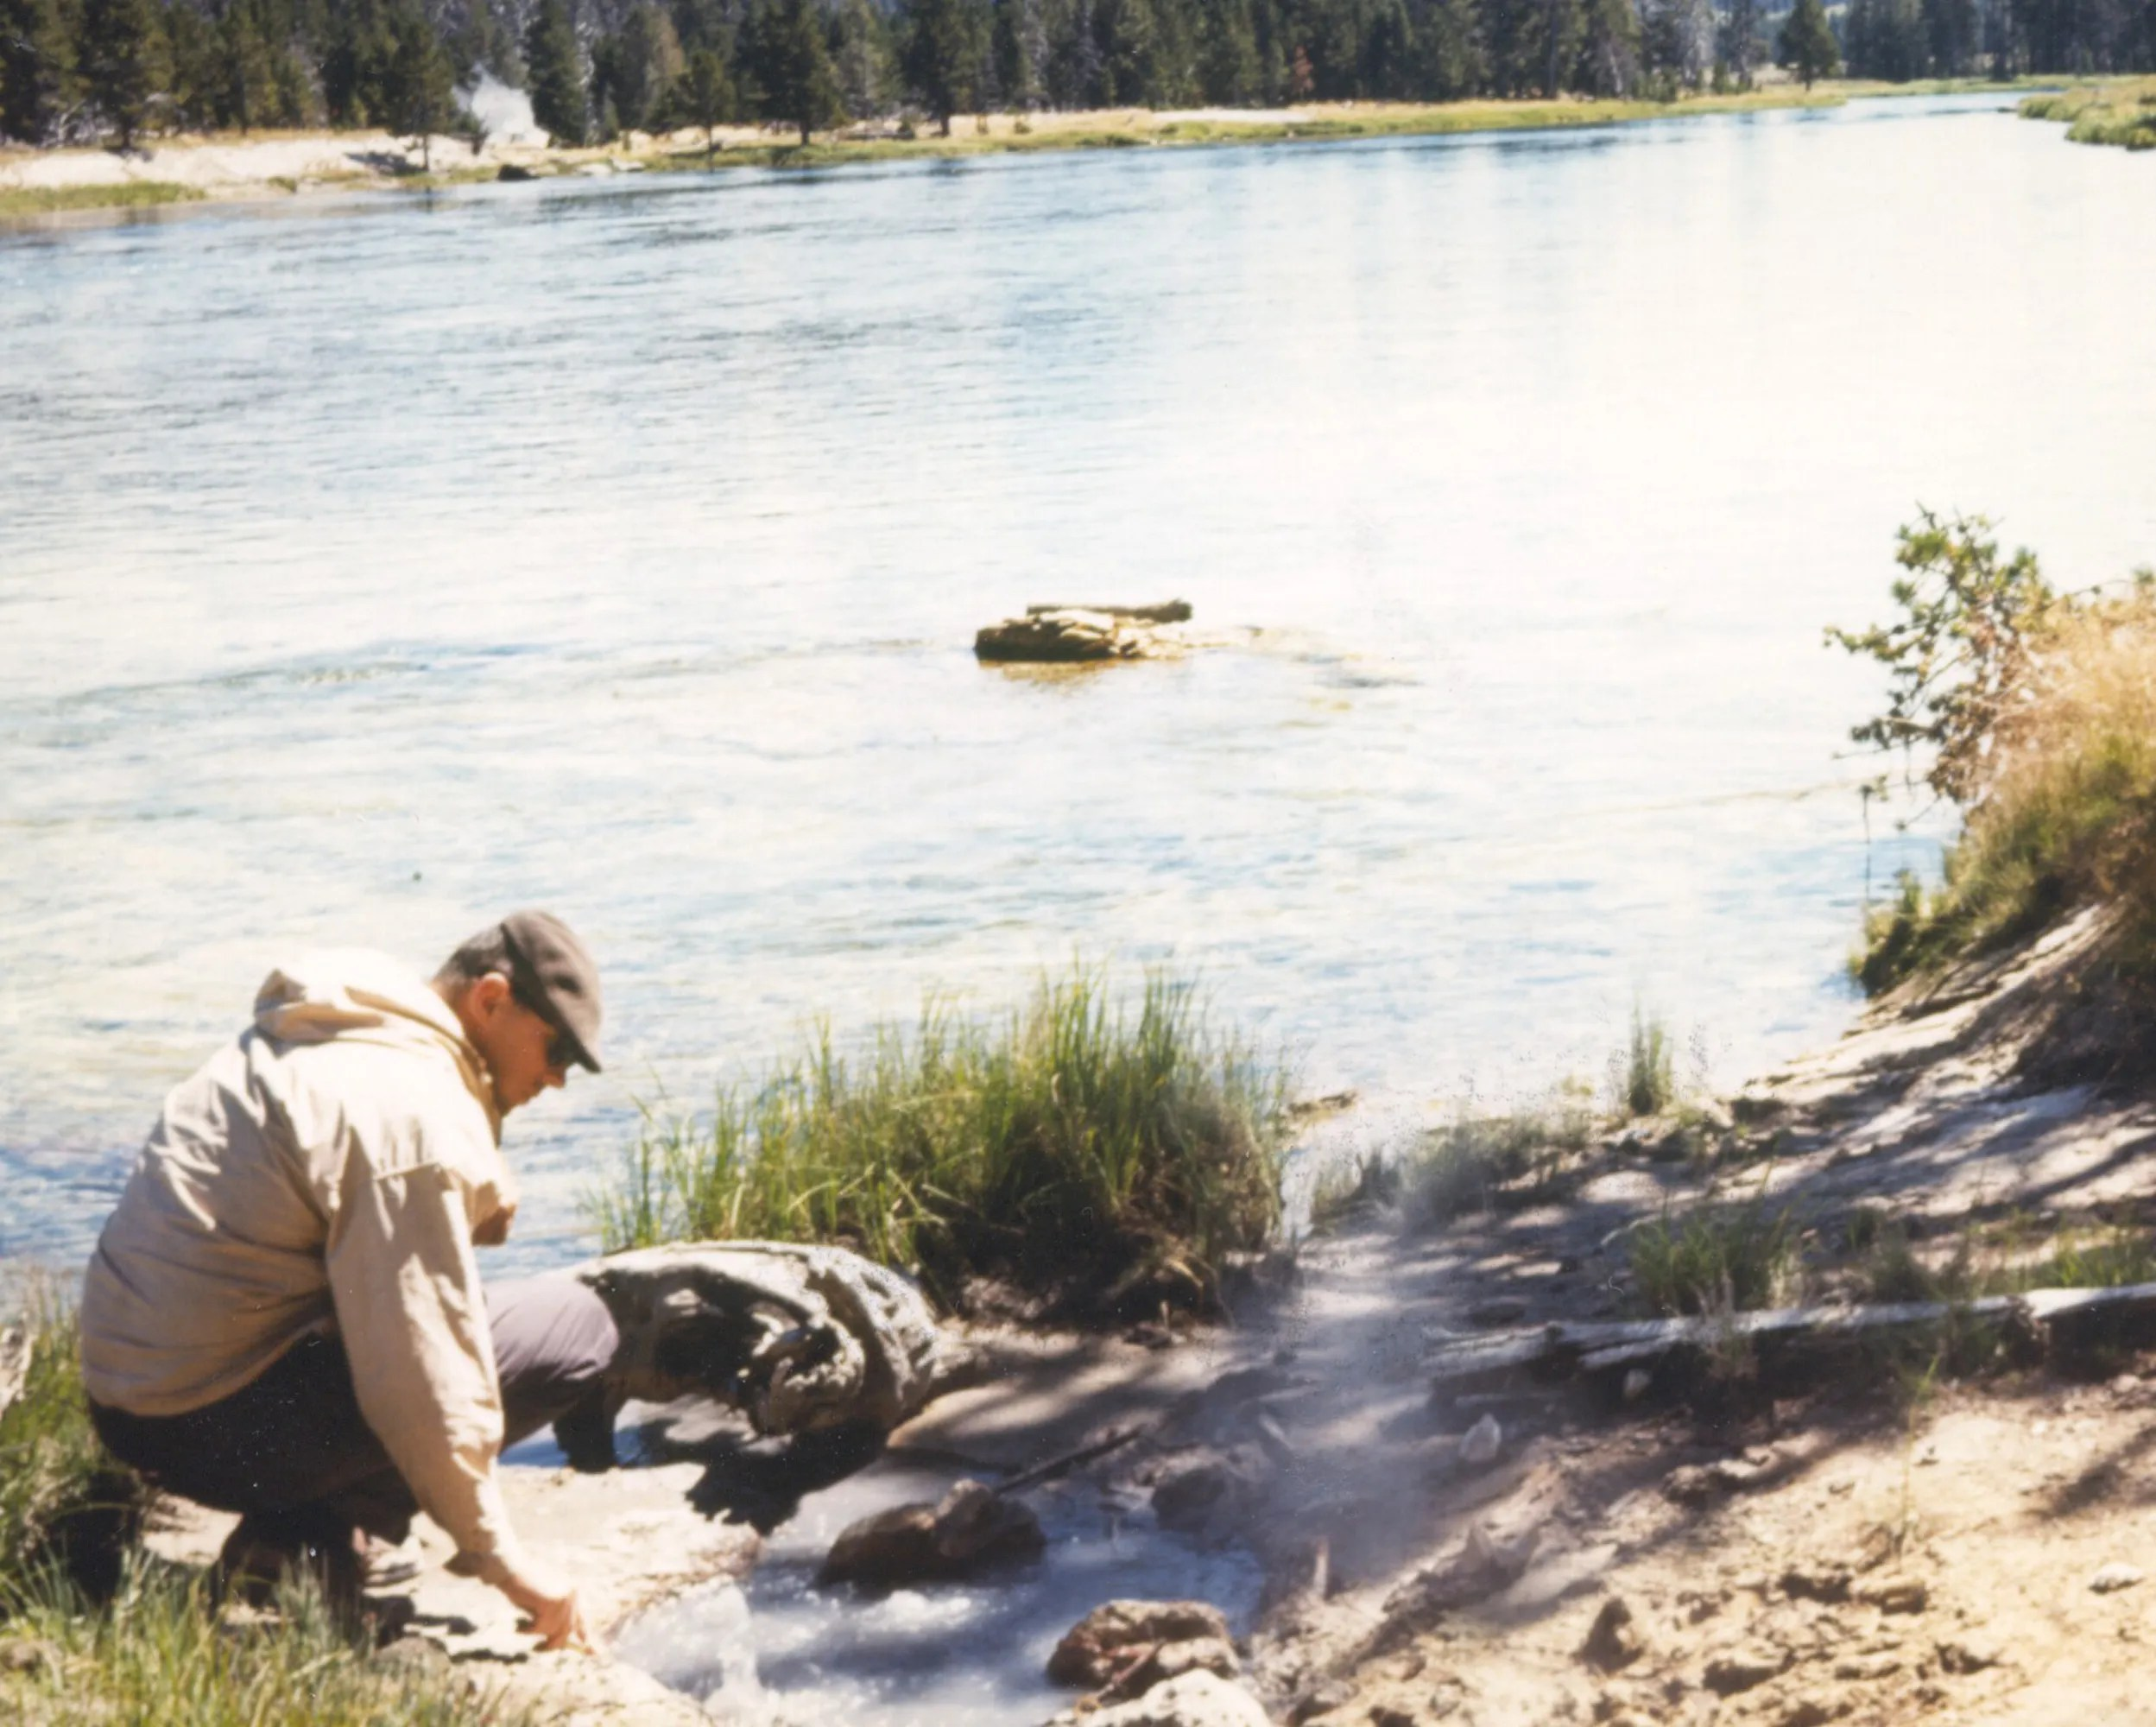 Microbiologist Tom Brock collected one of his first samples from the Yellowstone River in 1964. A pioneer in his field, Brock's discovery of bacteria that could live at extremely high temperatures led to major advances in biology and medicine, including including the technology used in COVID -19 PCR tests.